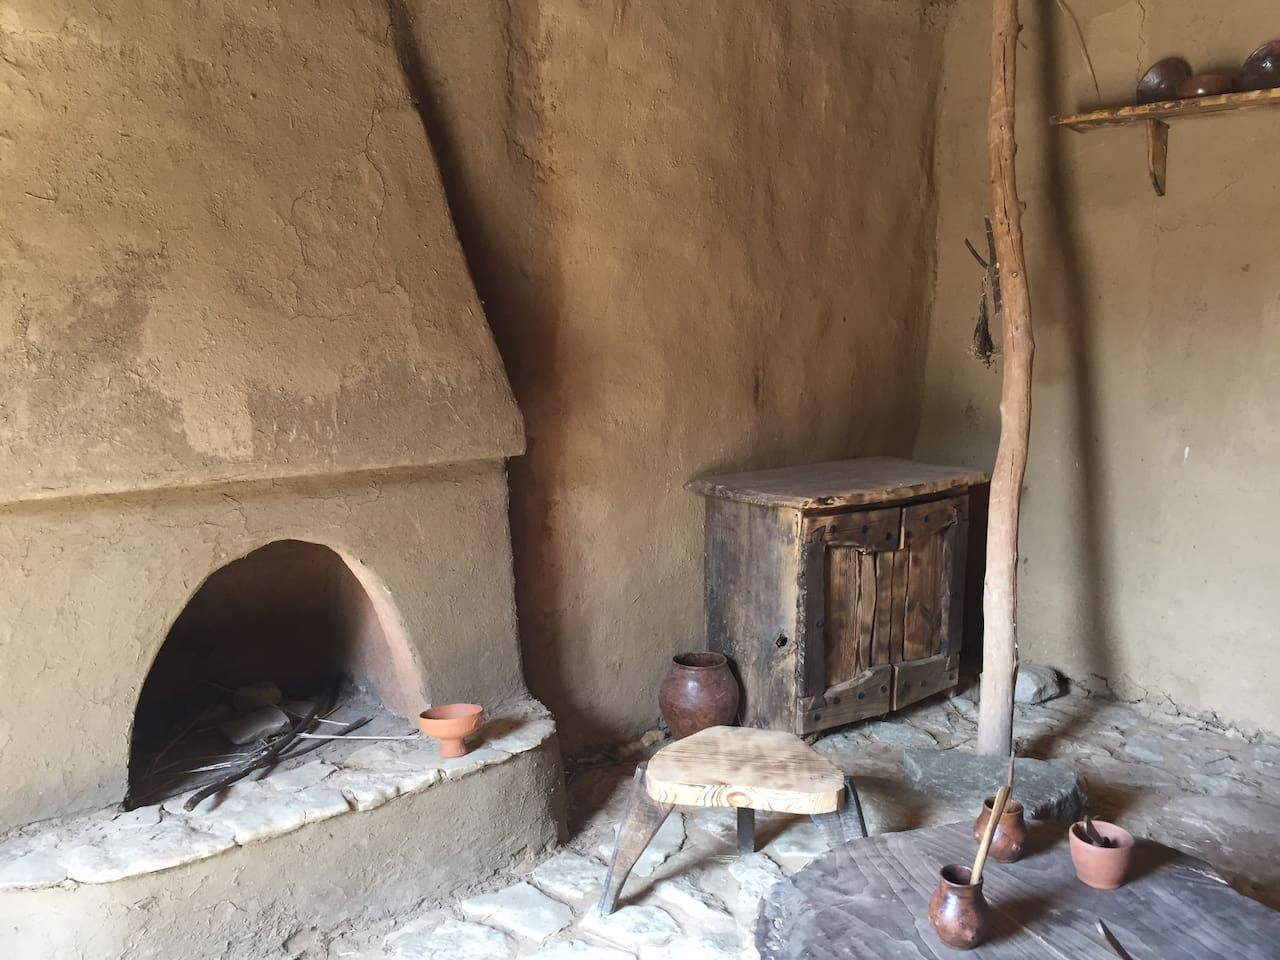 Neolithic House (6,200 BC)